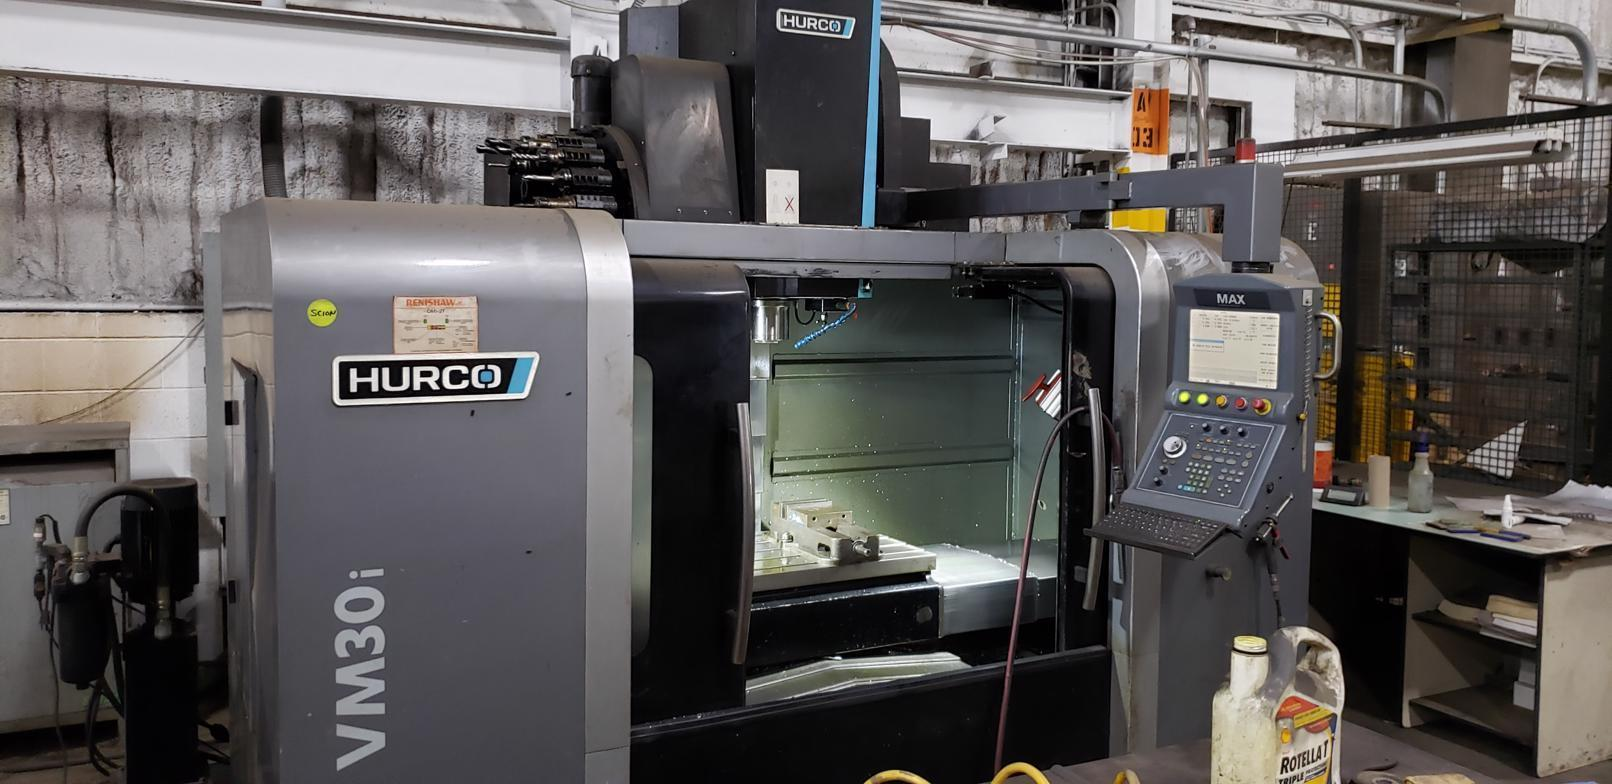 USED HURCO 4 AXIS VERTICAL CNC MACHINING CENTER MODEL VM30i, STOCK# 10799, YEAR 2013